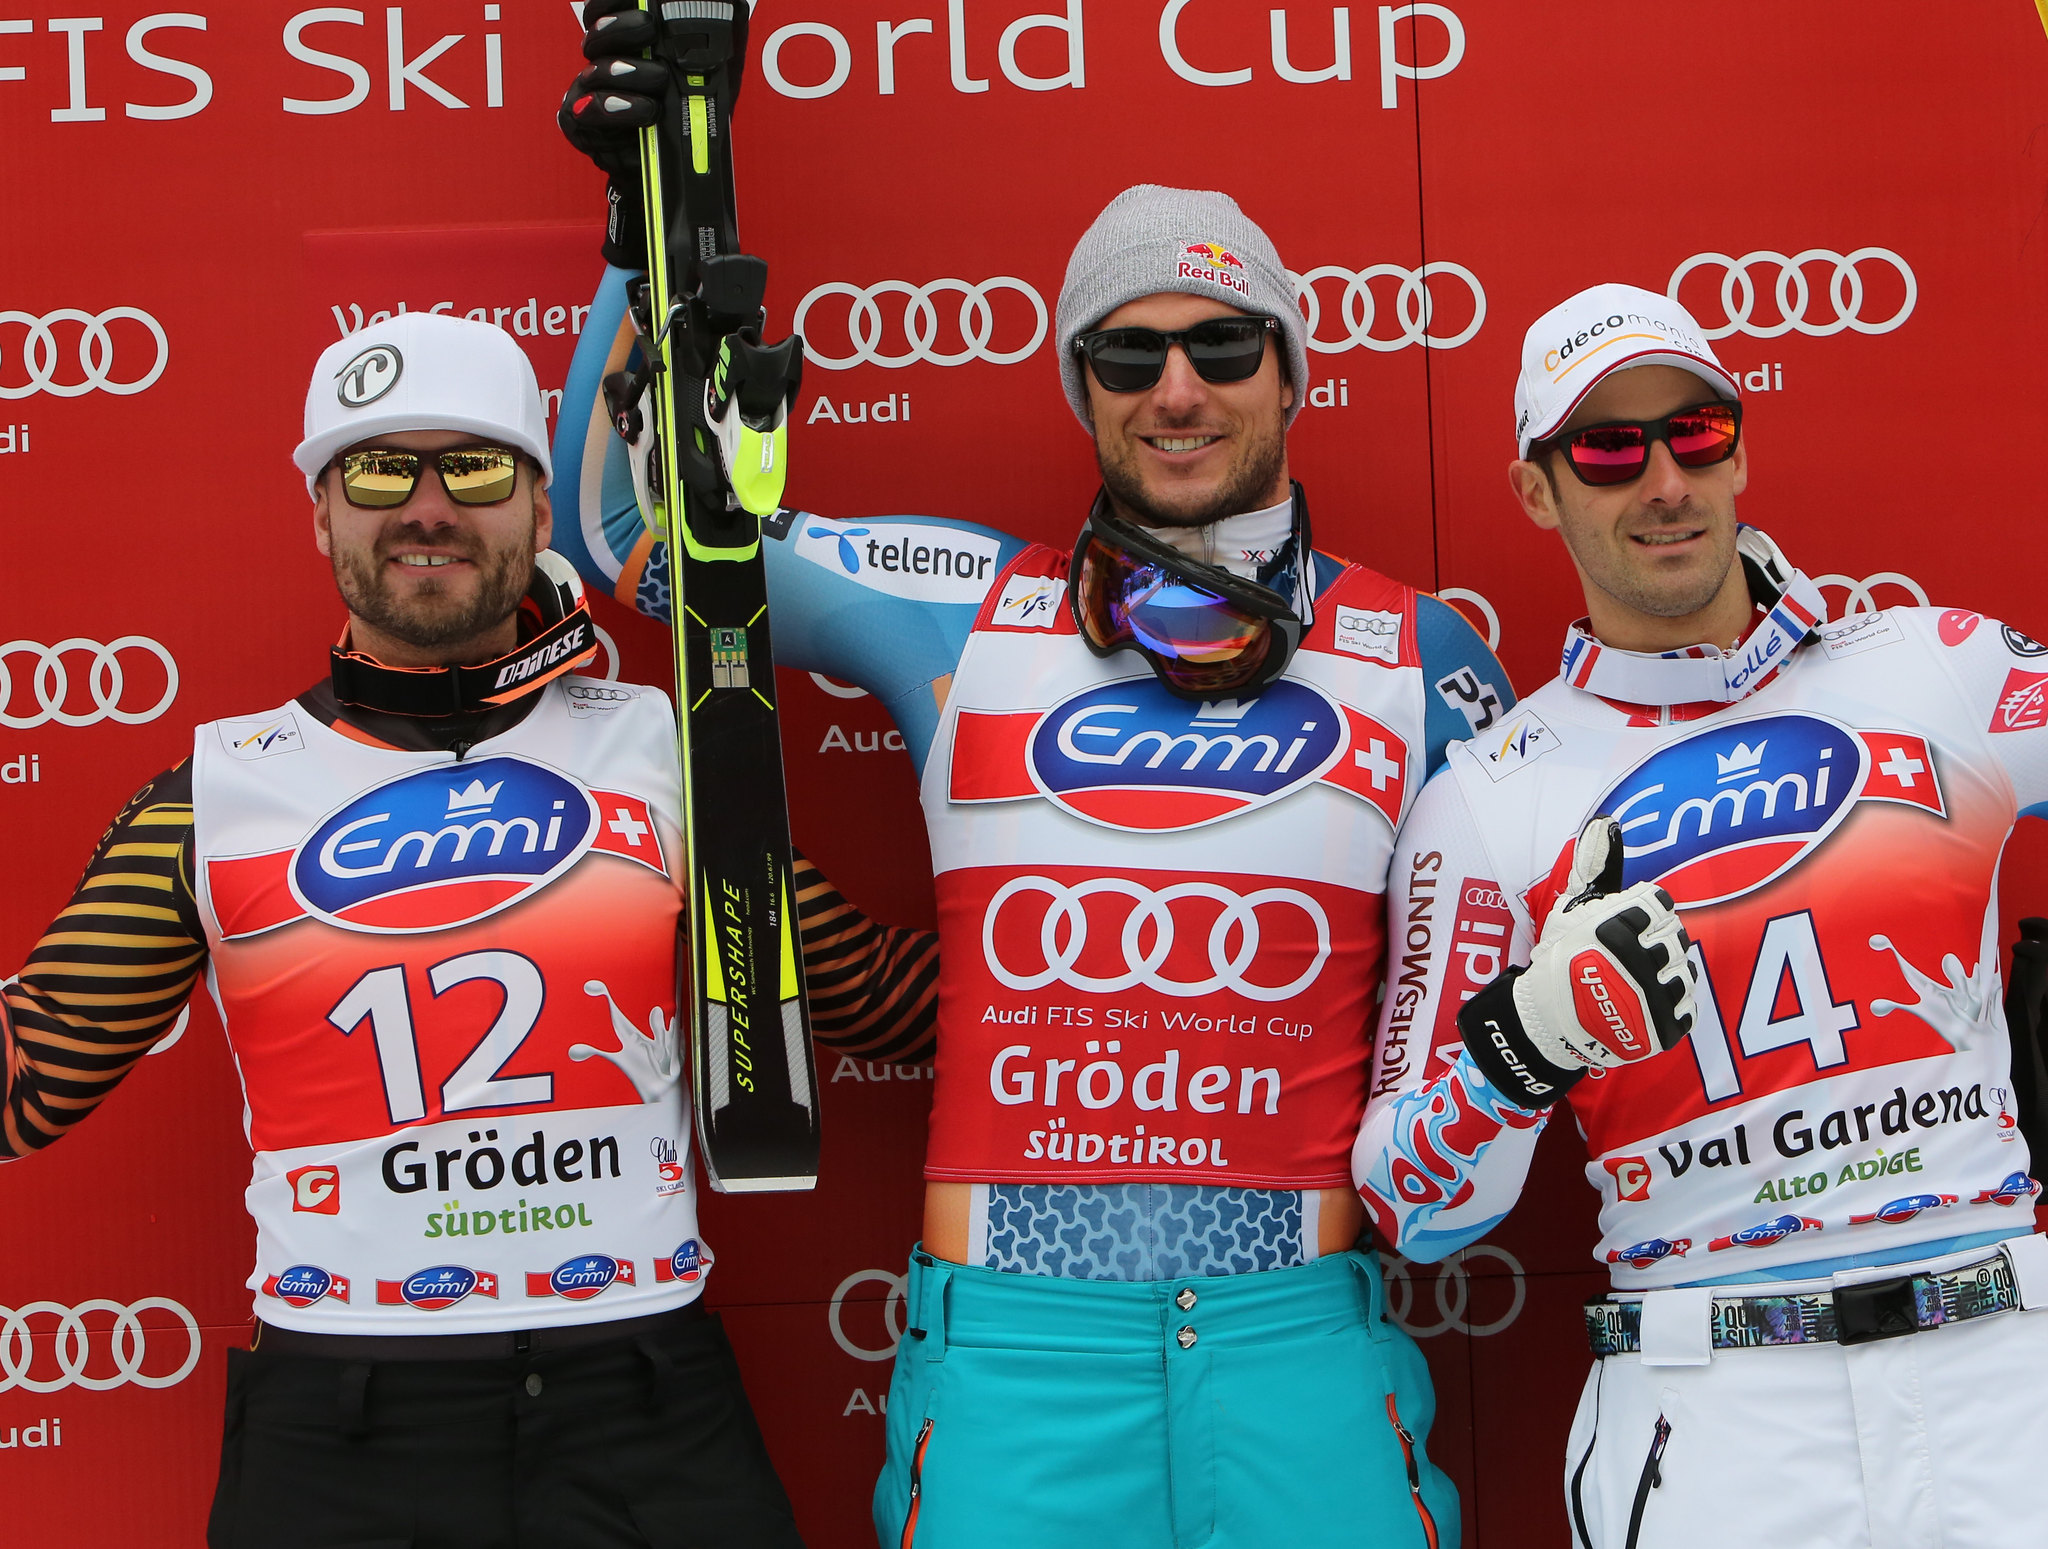 Jan Hudec earns a spot on the podium in Val Gardena, ITA